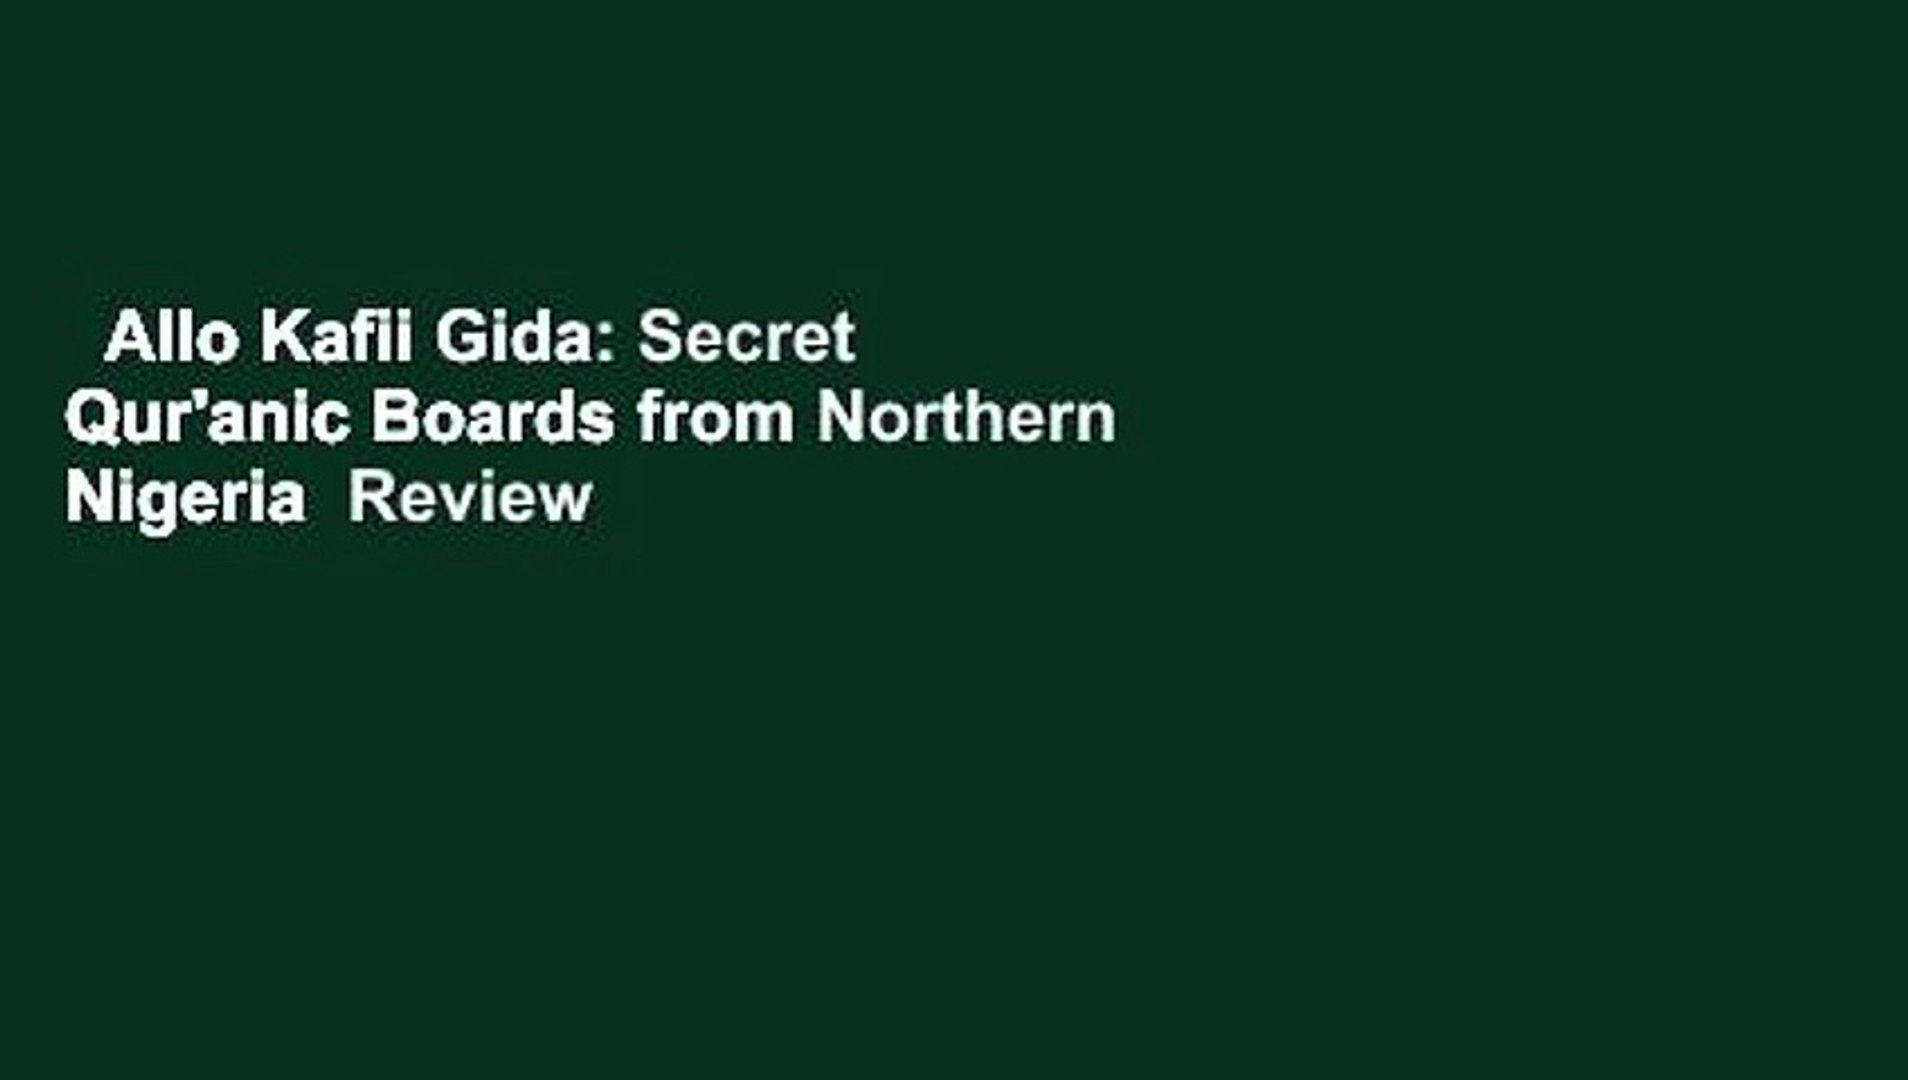 Allo Kafii Gida: Secret Qur'anic Boards from Northern Nigeria  Review